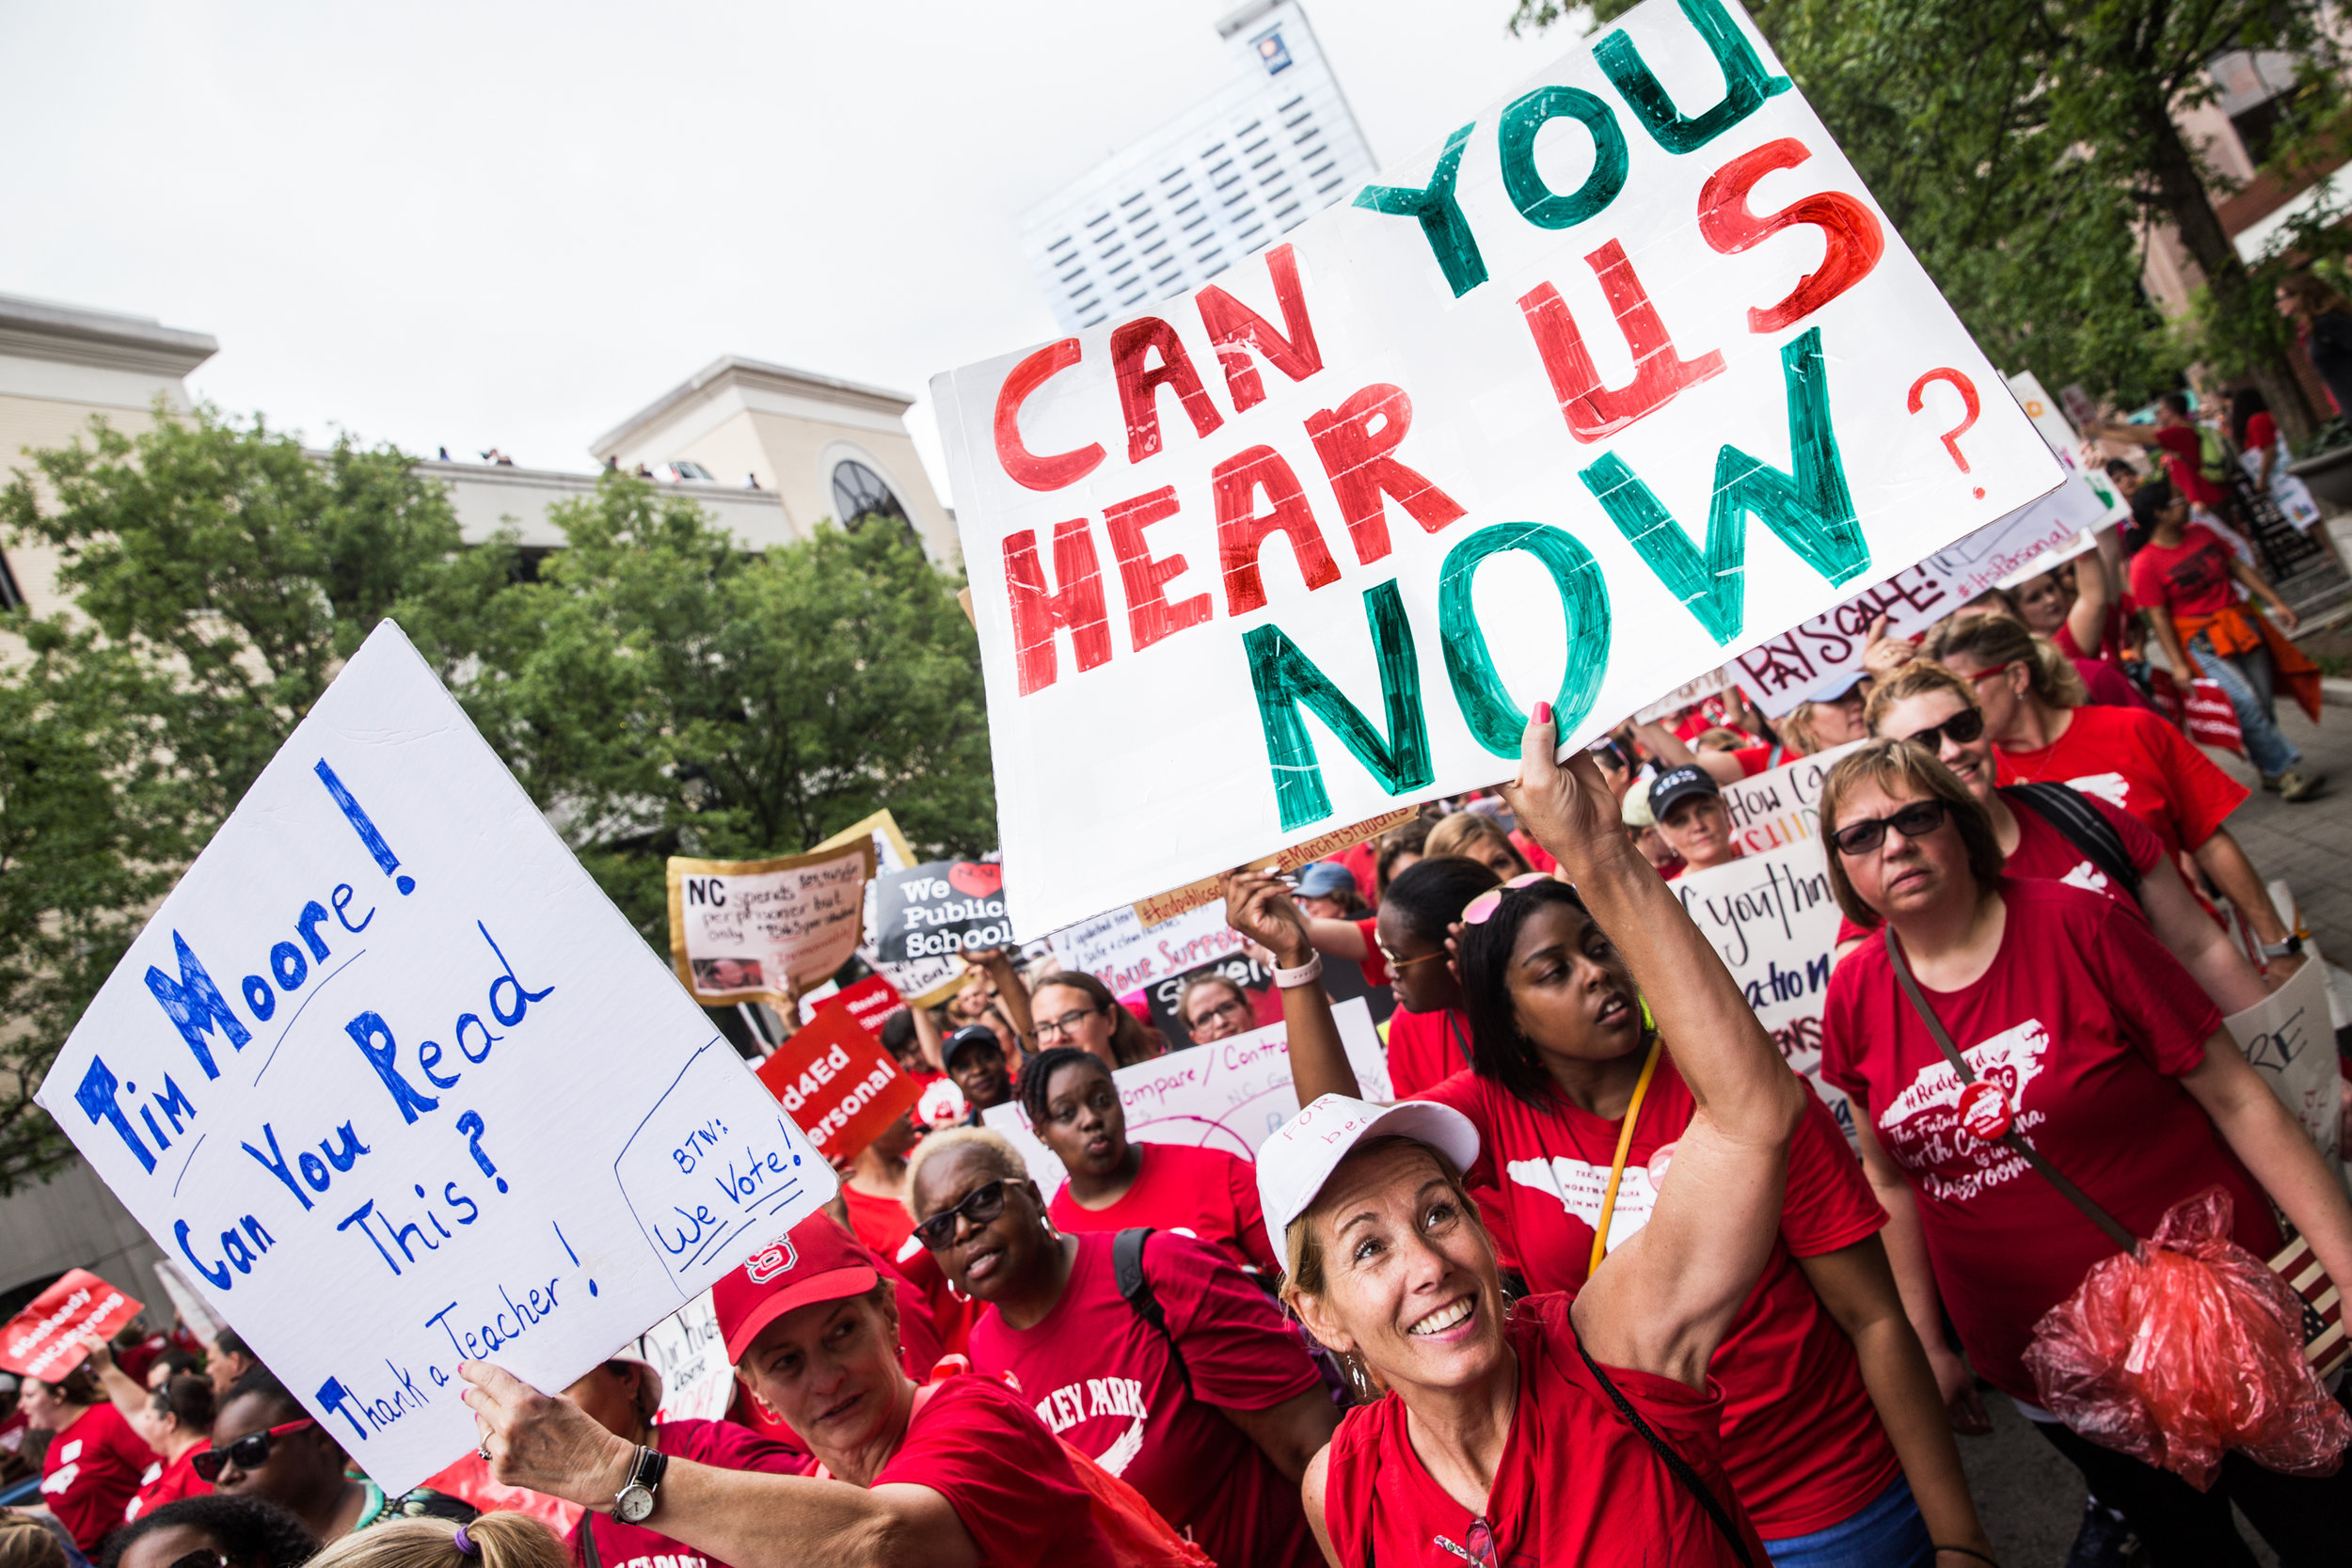 Approximately 20,000 educators march in downtown Raleigh on May 16, 2018 in the March for Students and Teacher's Rally for Respect. The march was organized by the North Carolina Association of Educators (NCAE) in urge of increased per-pupil support and better teacher pay. [Dan Busey/The Dispatch]